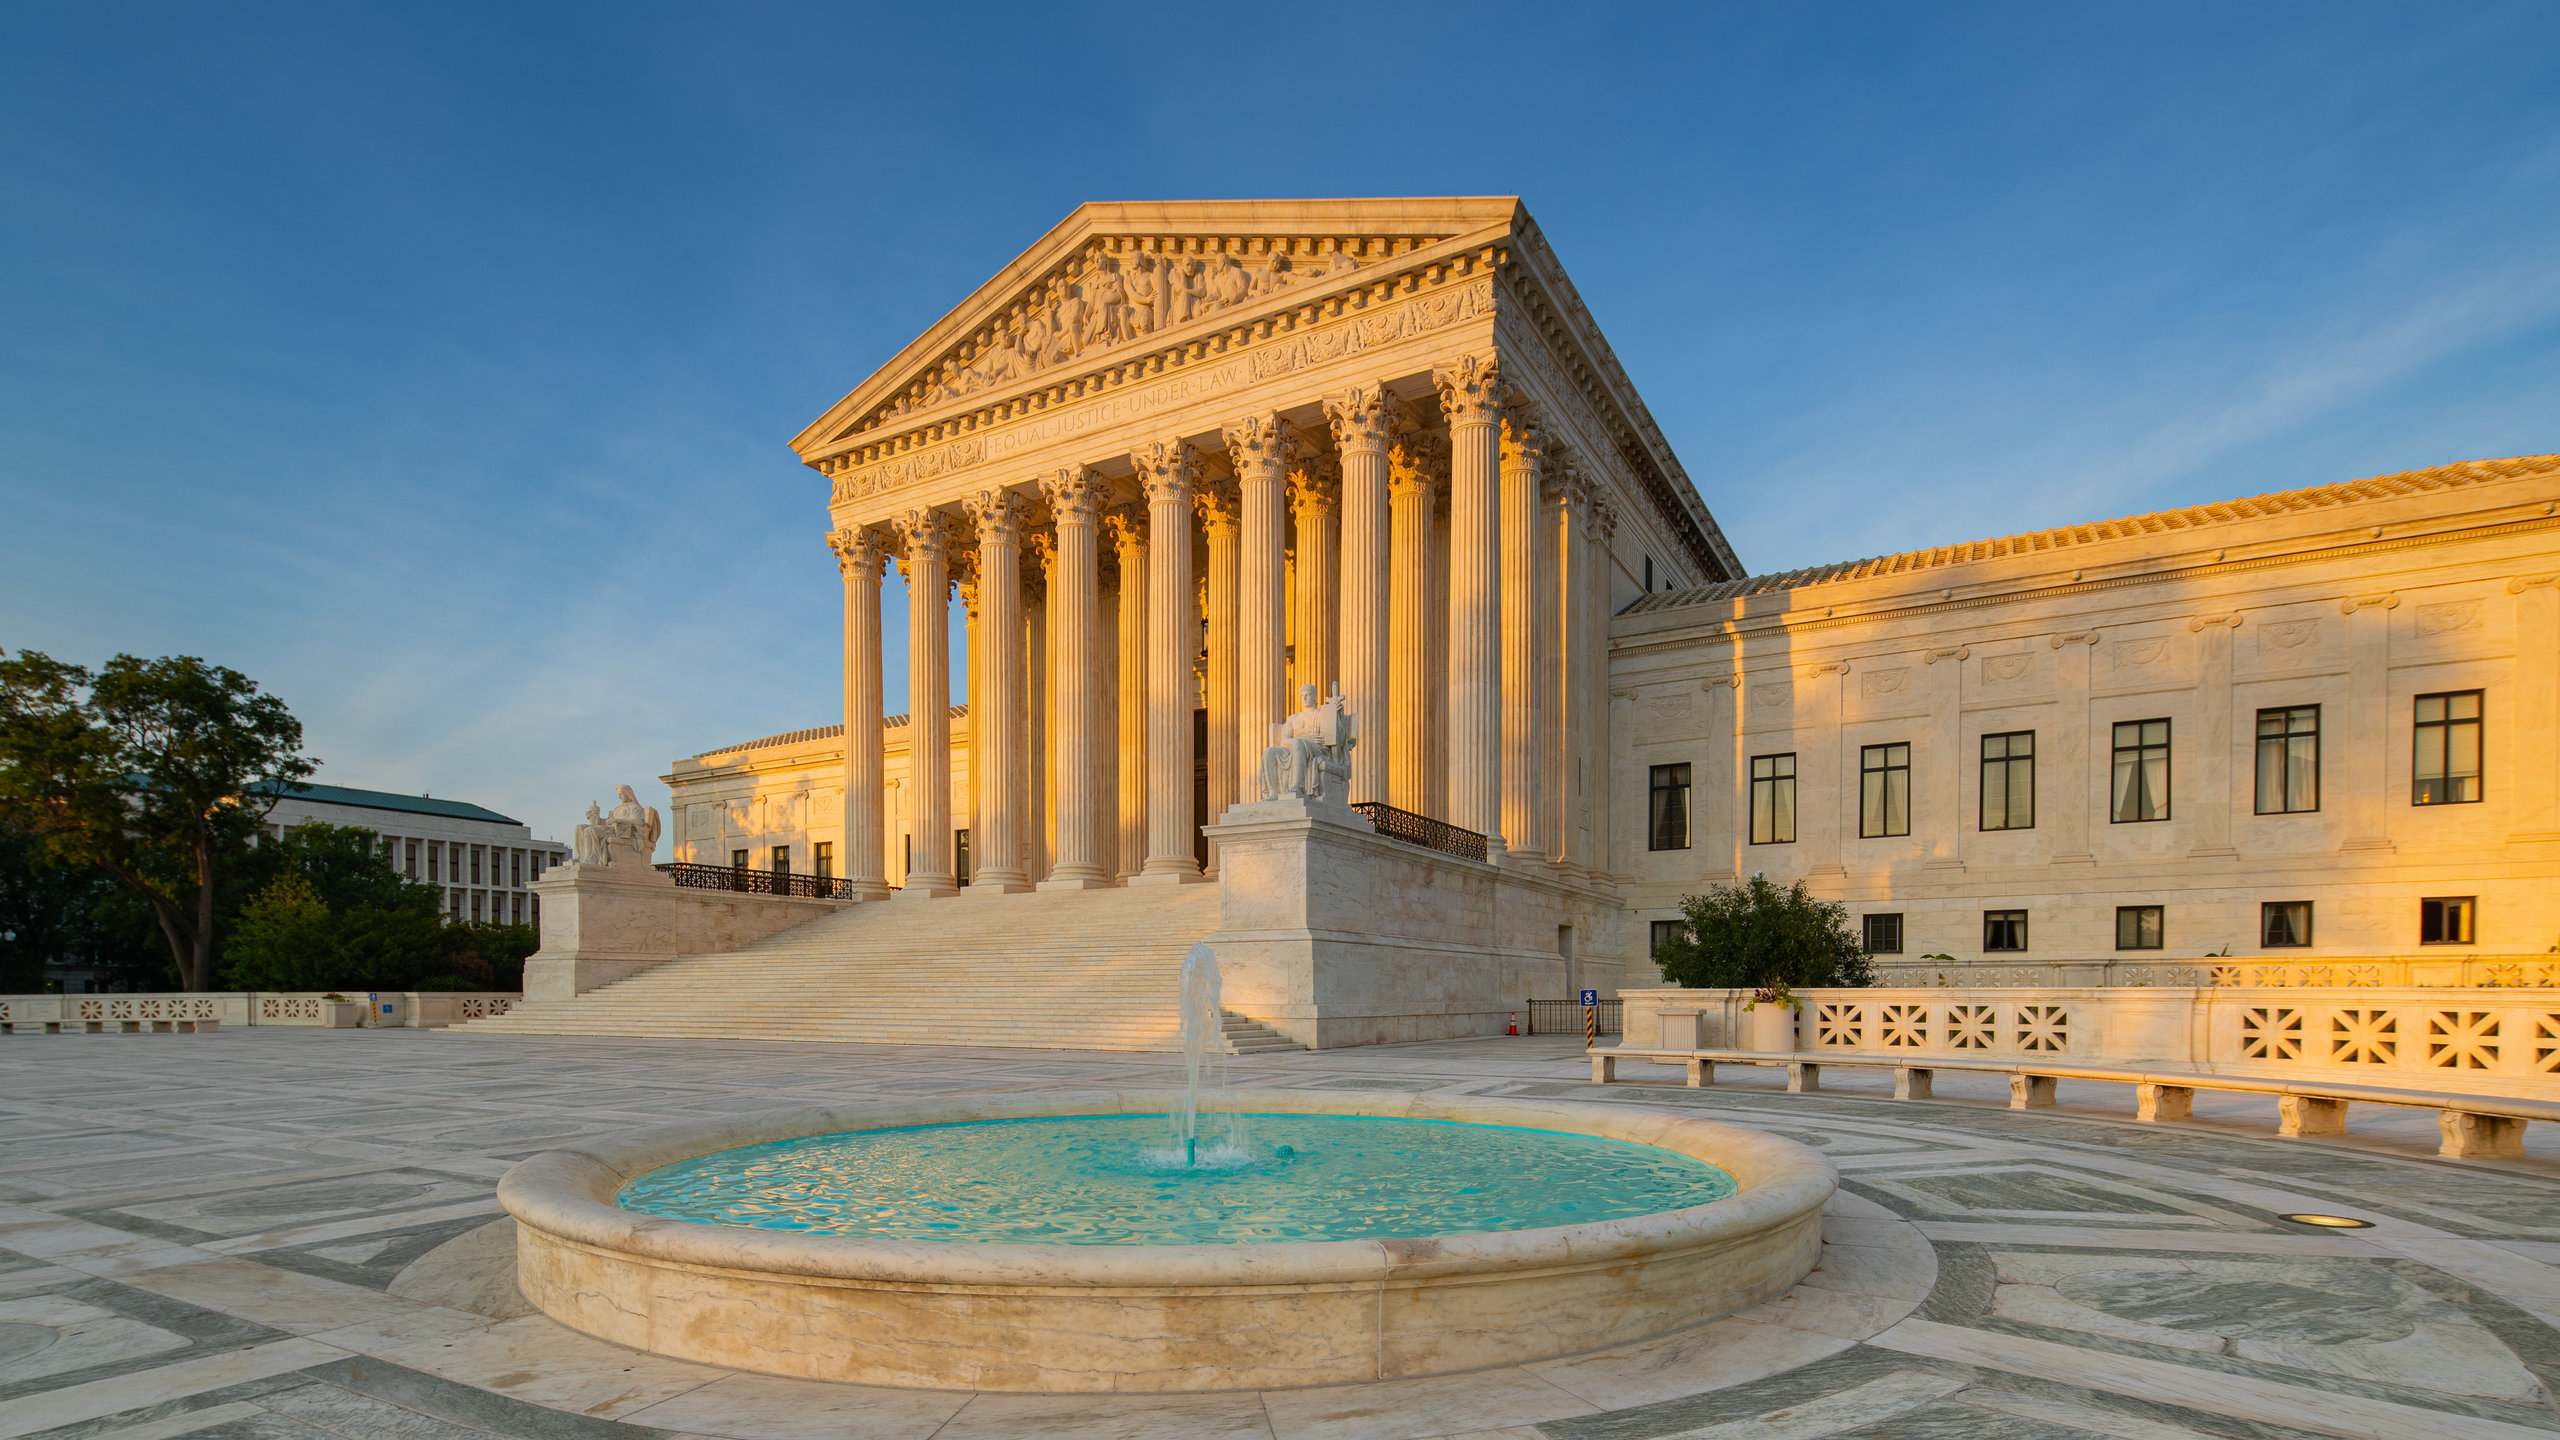 Supreme Court of the United States, Washington, District of Columbia, United States of America